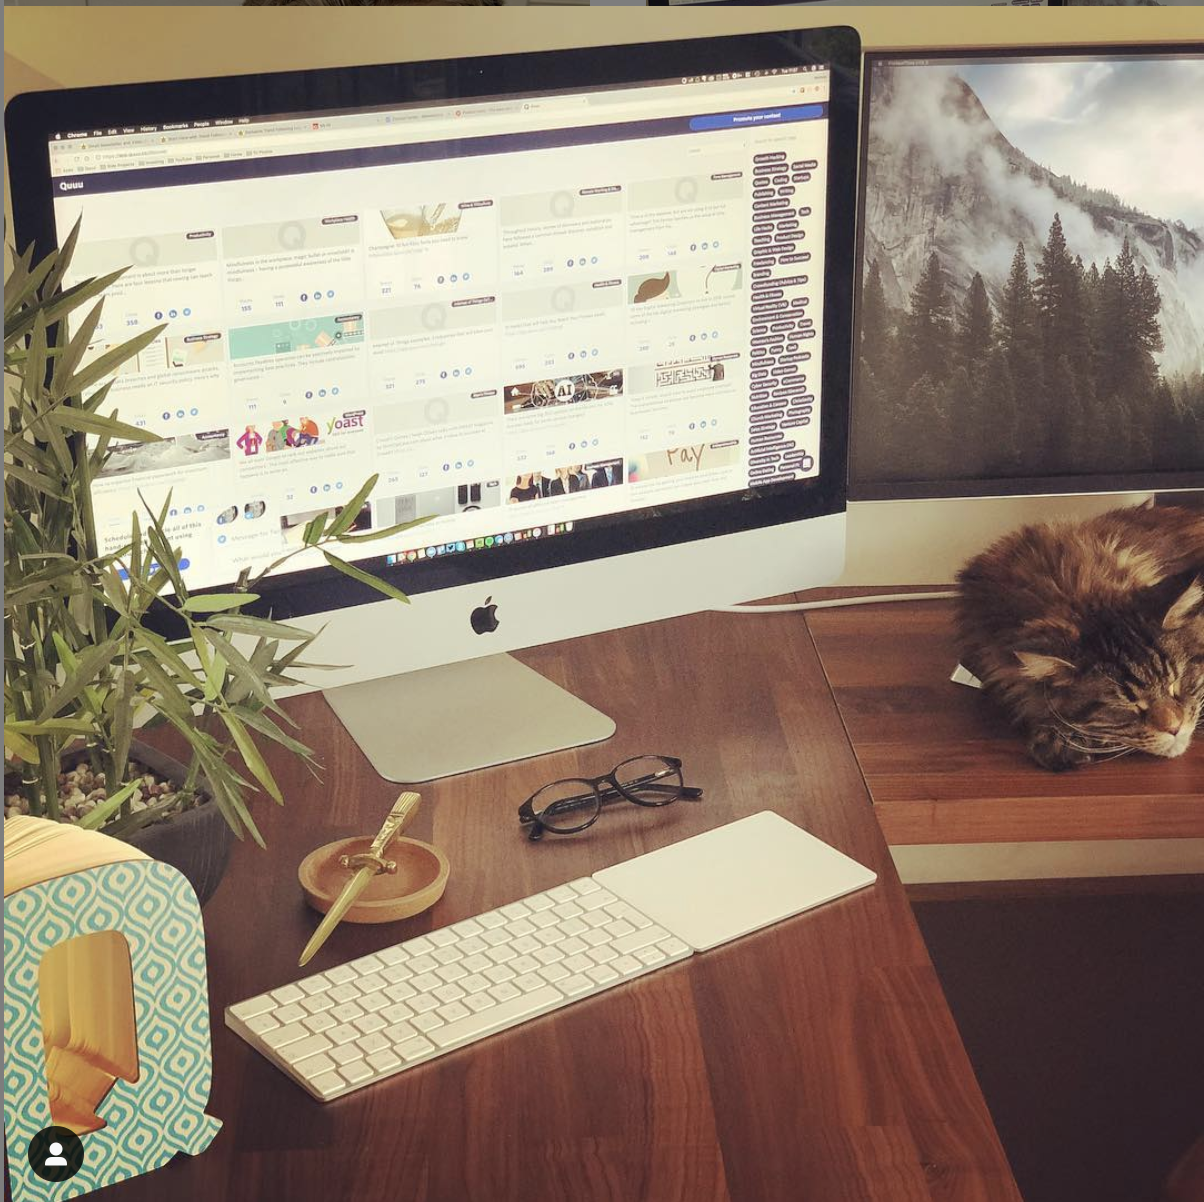 A remote worker's home office